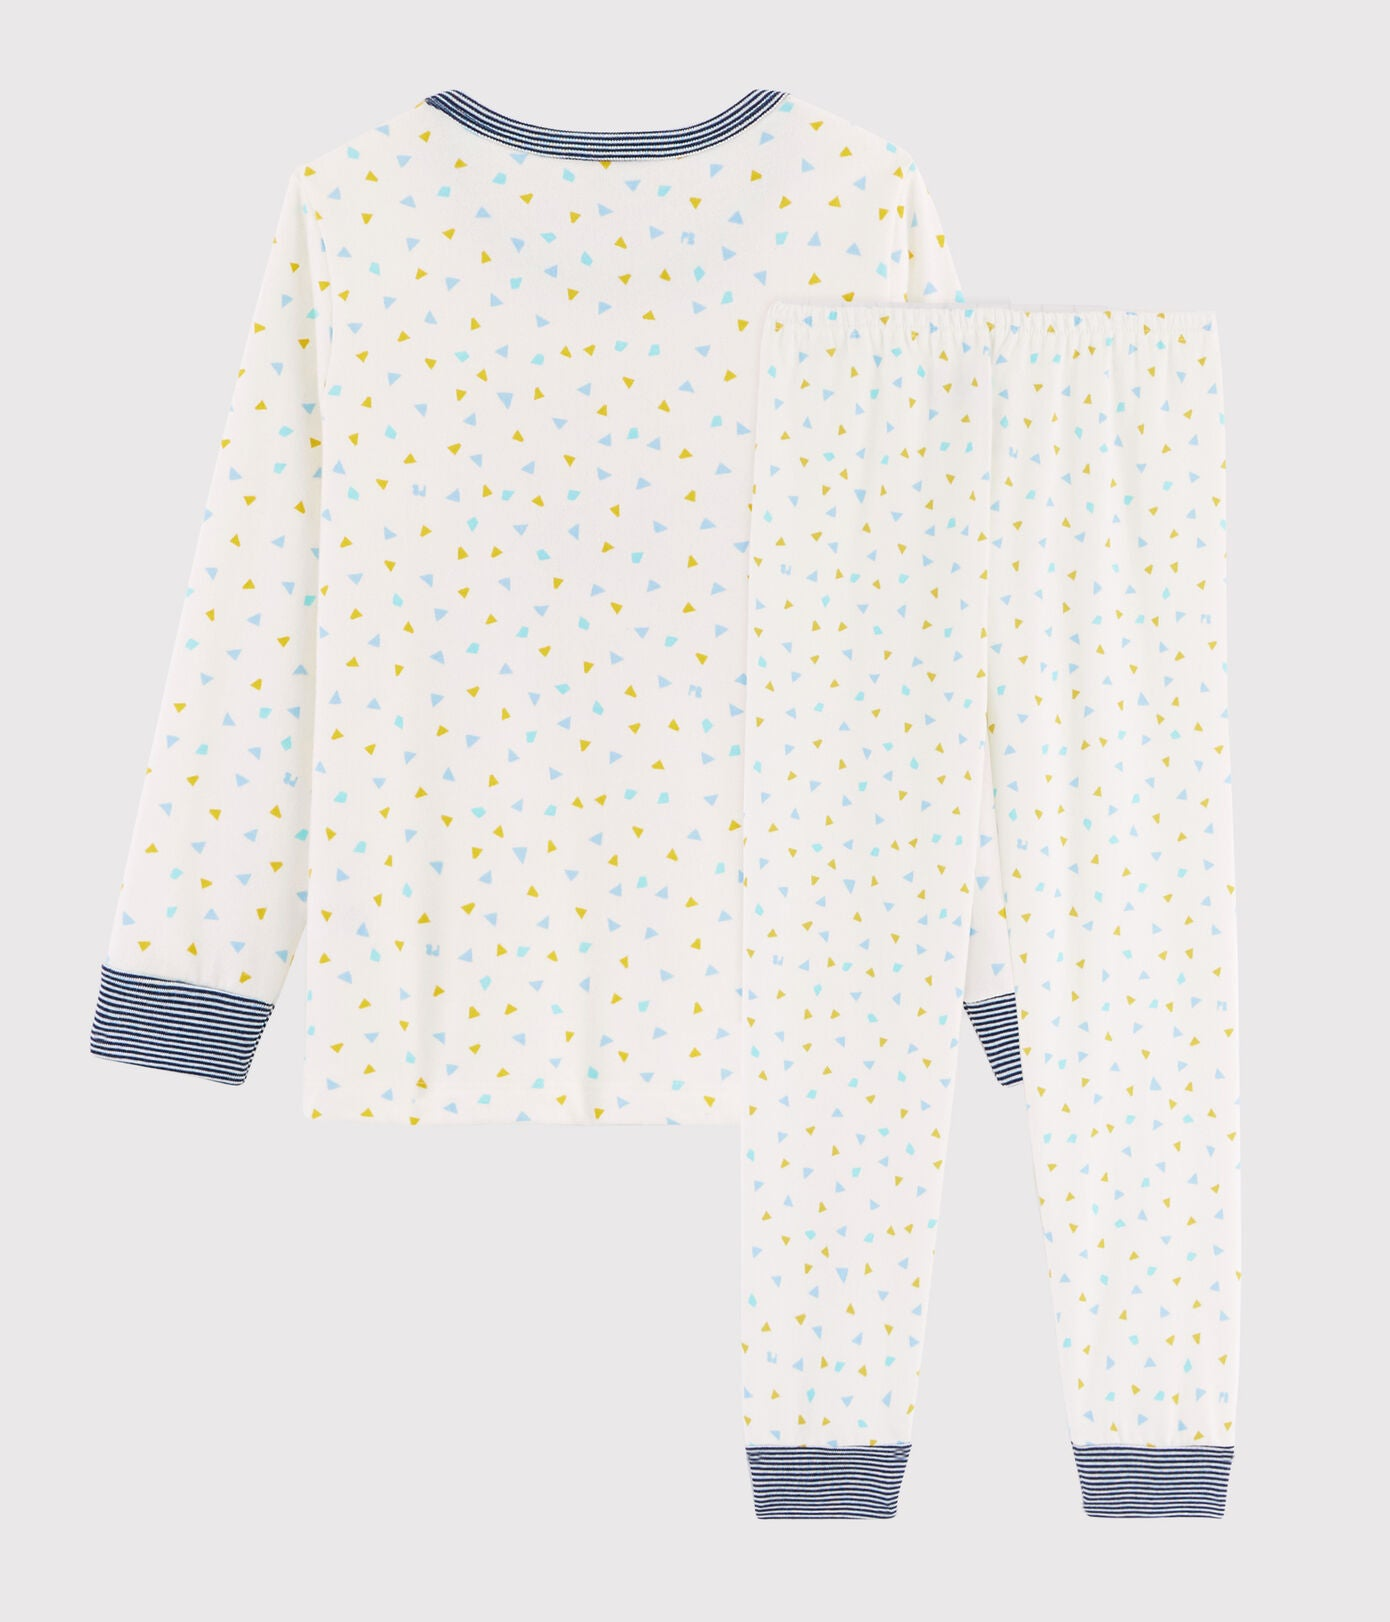 Children'sPyjamas